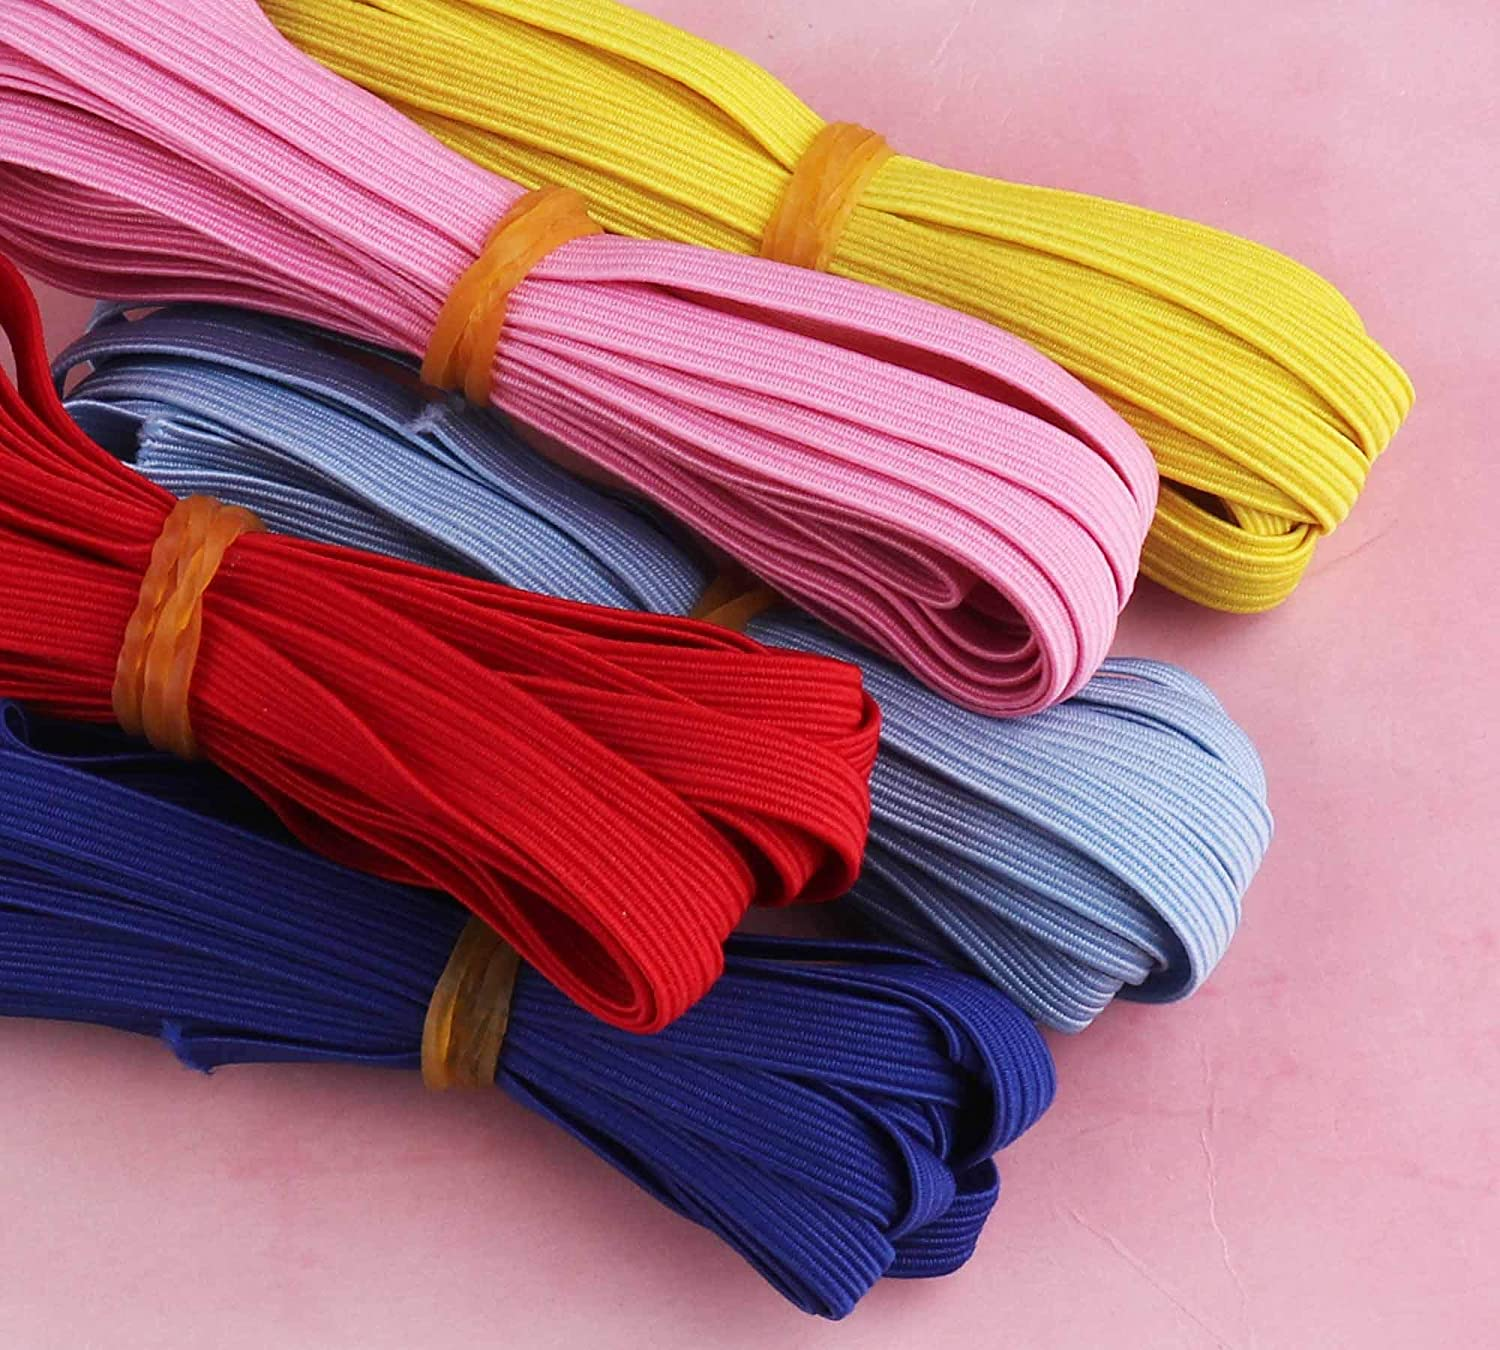 Amazon Com Elastic Bands For Face Mask 1 4 Inch Braided Elastic Cord For Sewing Crafts Diy Apparel Colored Elastic Bands For Mask Making Elastic Ribbon Multiple Thickening By The K Factor 50yards Blue